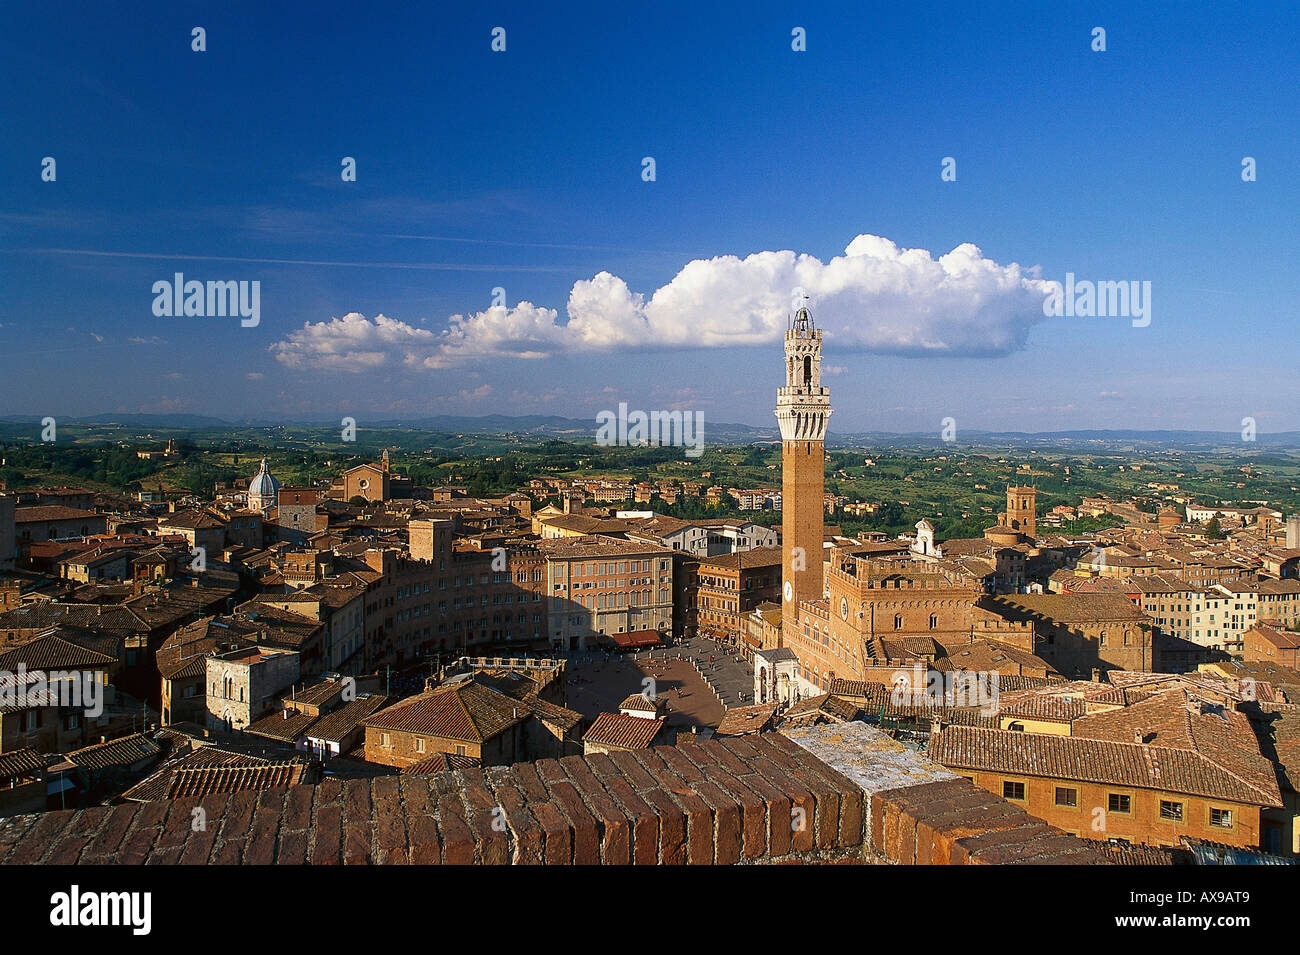 Townscape with Piazza del Campo, Torre del Mangia and Palazzo Pubblico, Siena, Tuscany, Italy - Stock Image